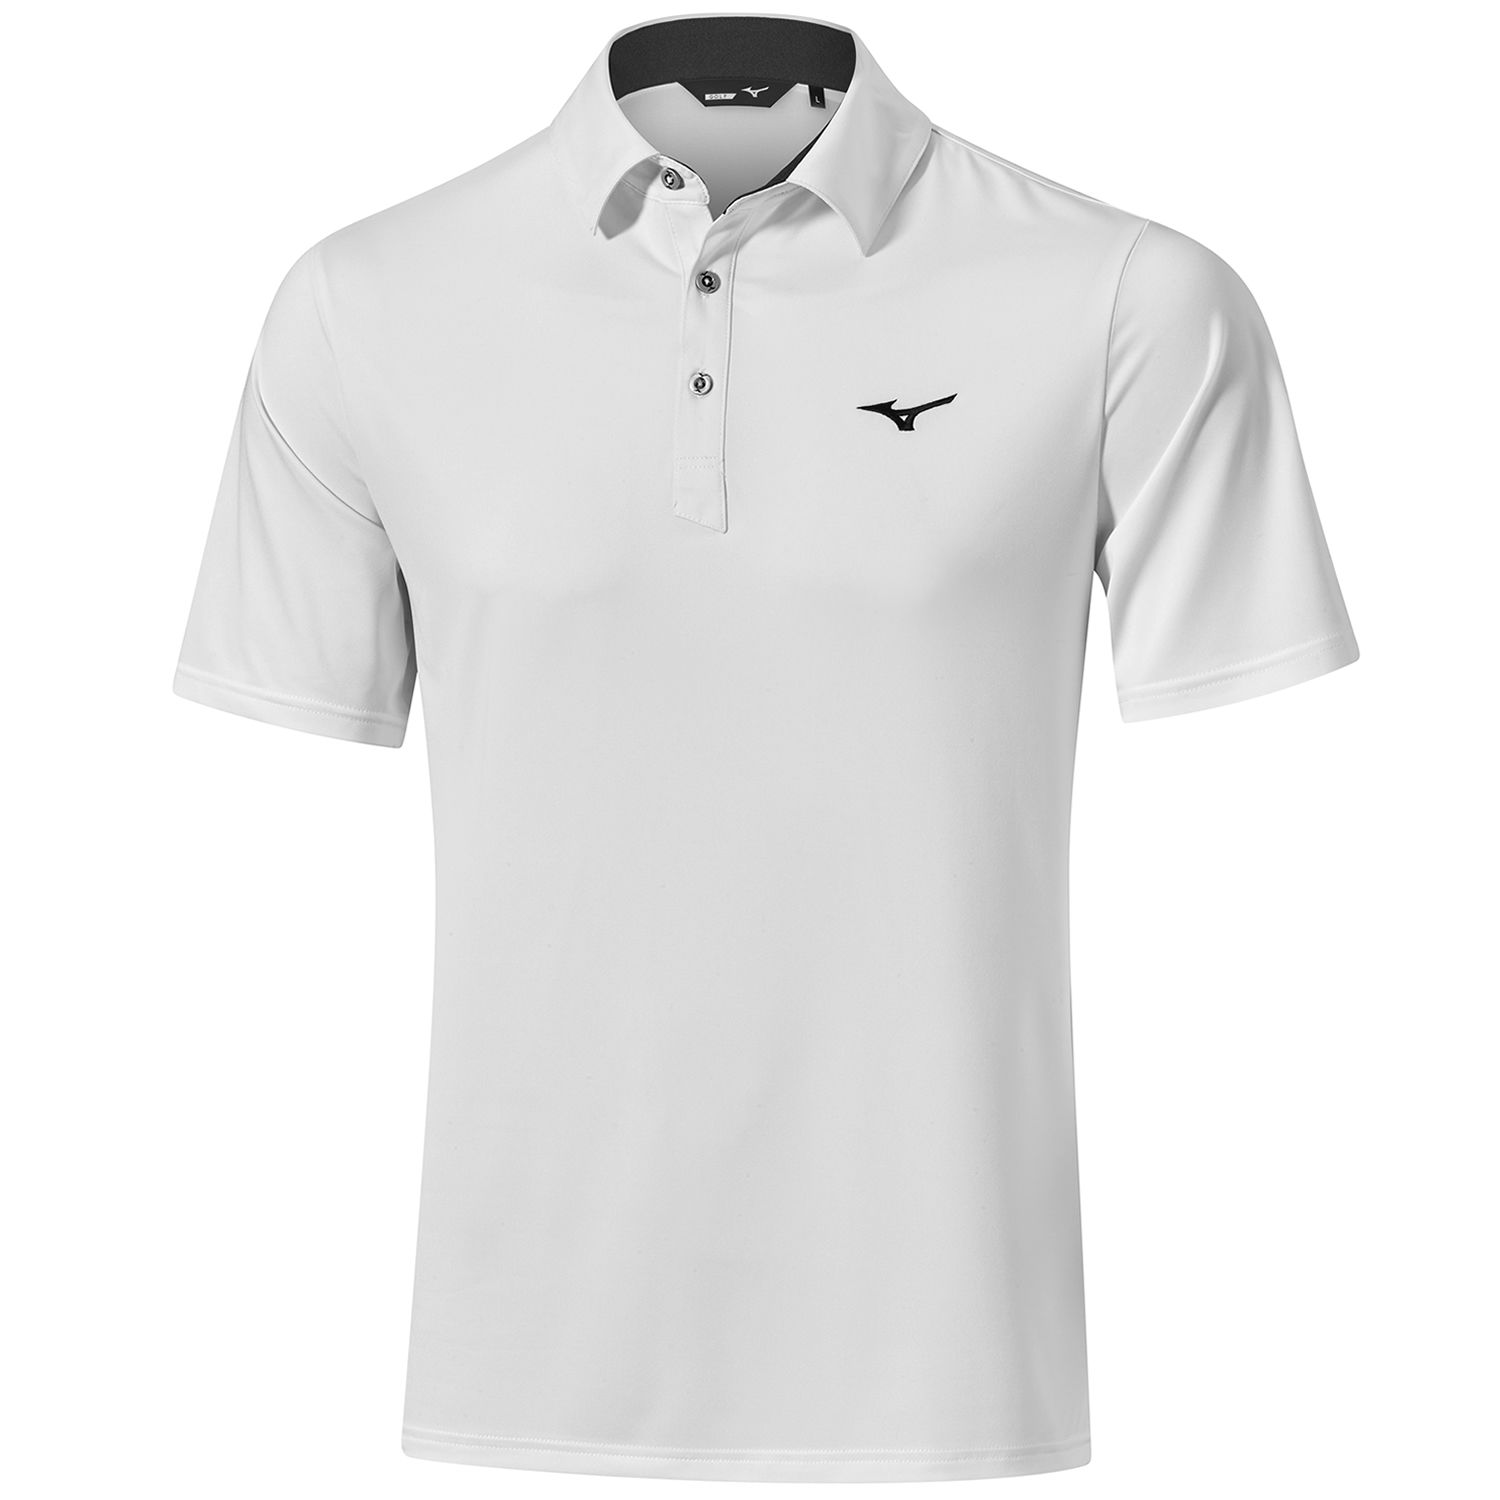 Mizuno Quick Dry Performance Polo Shirt